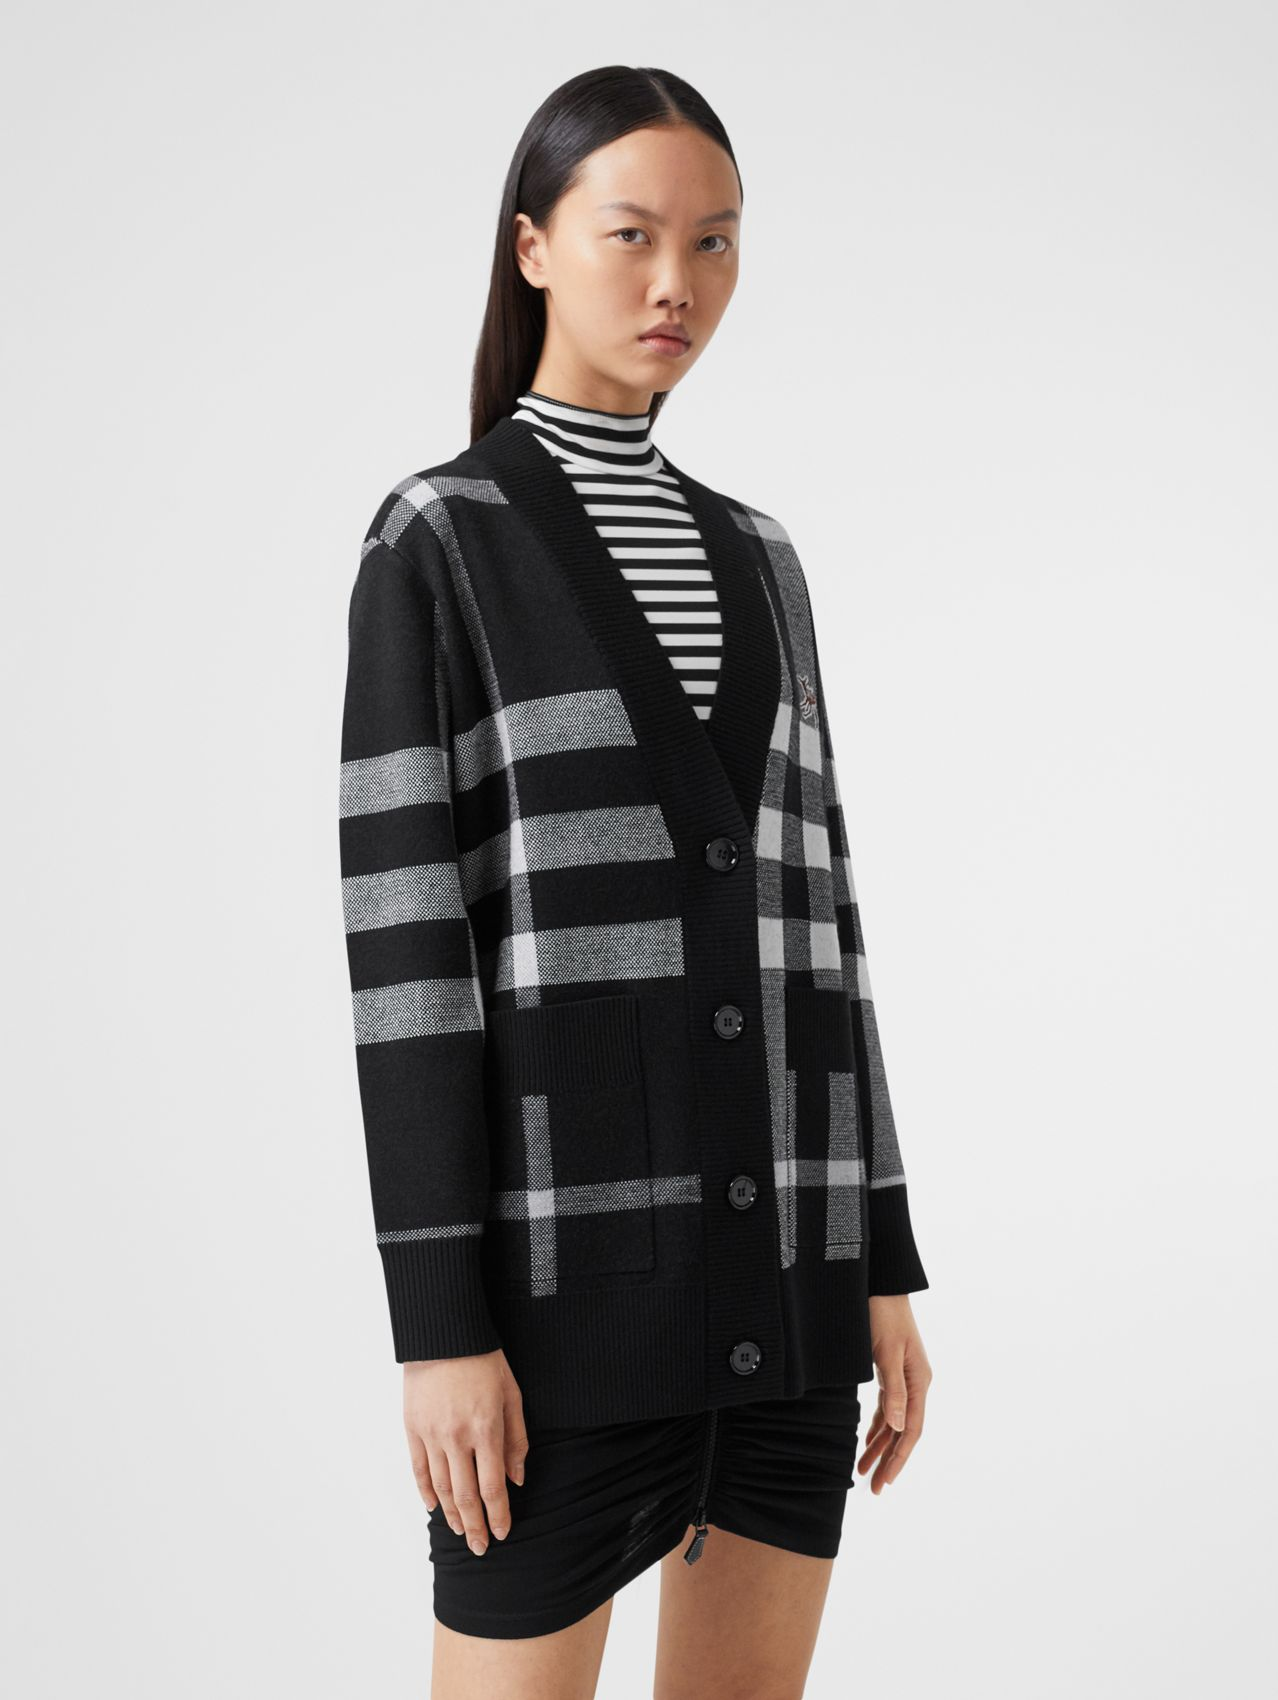 Deer Motif Check Wool Blend Jacquard Cardigan (Black)